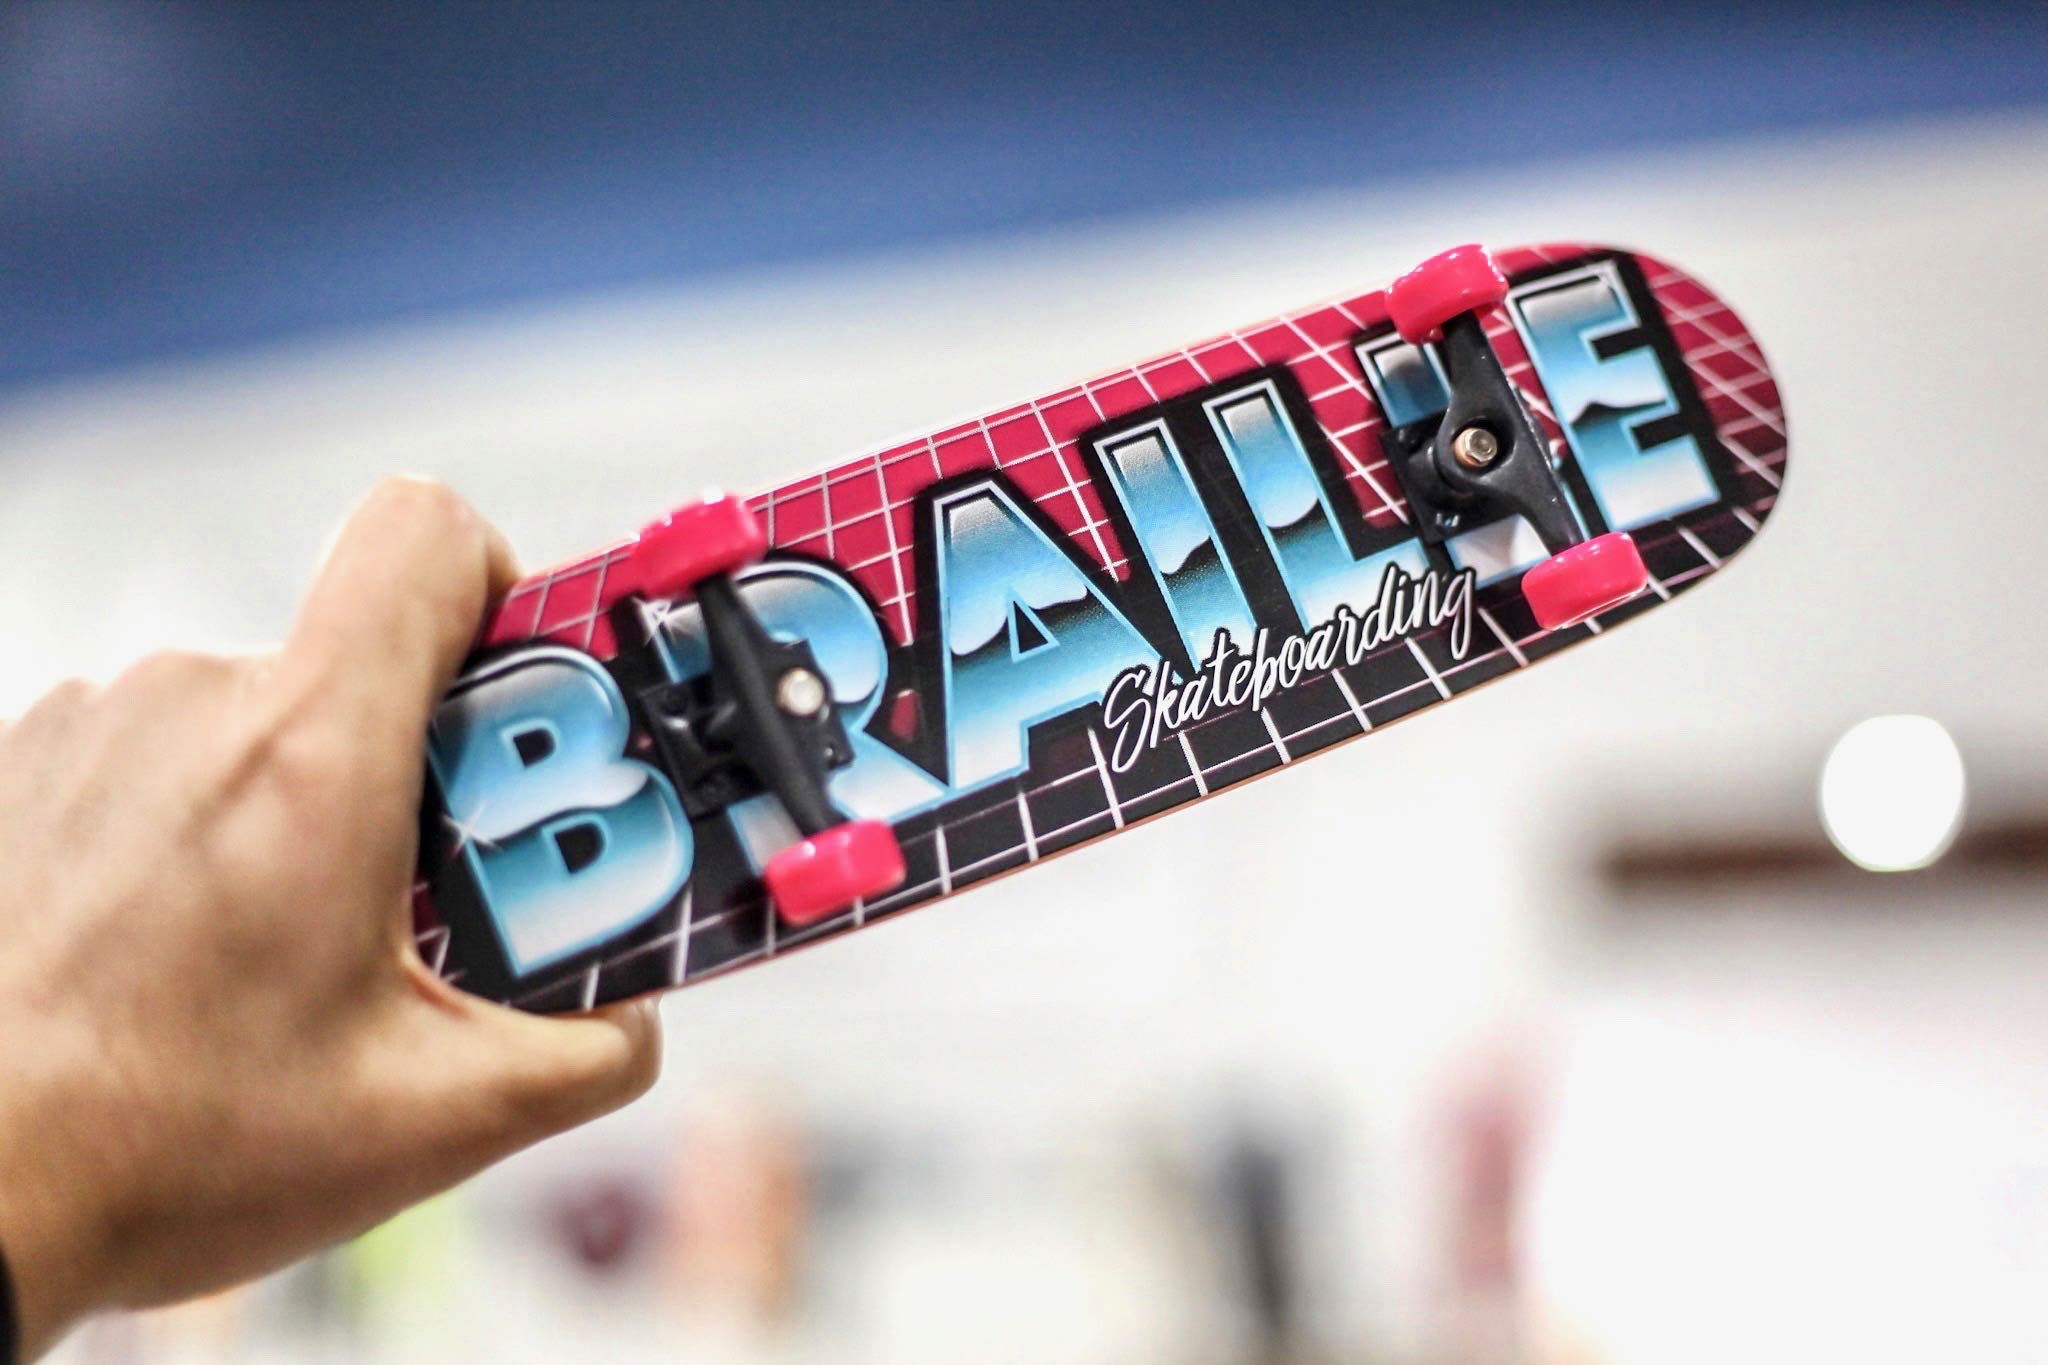 Braille Skateboarding Aaron Kyro 80's 11inch Professional Hand Board. Toy Skateboard Comes with Wheels, Trucks, Hardware and Tools. Real Griptape. by Braille Skateboarding